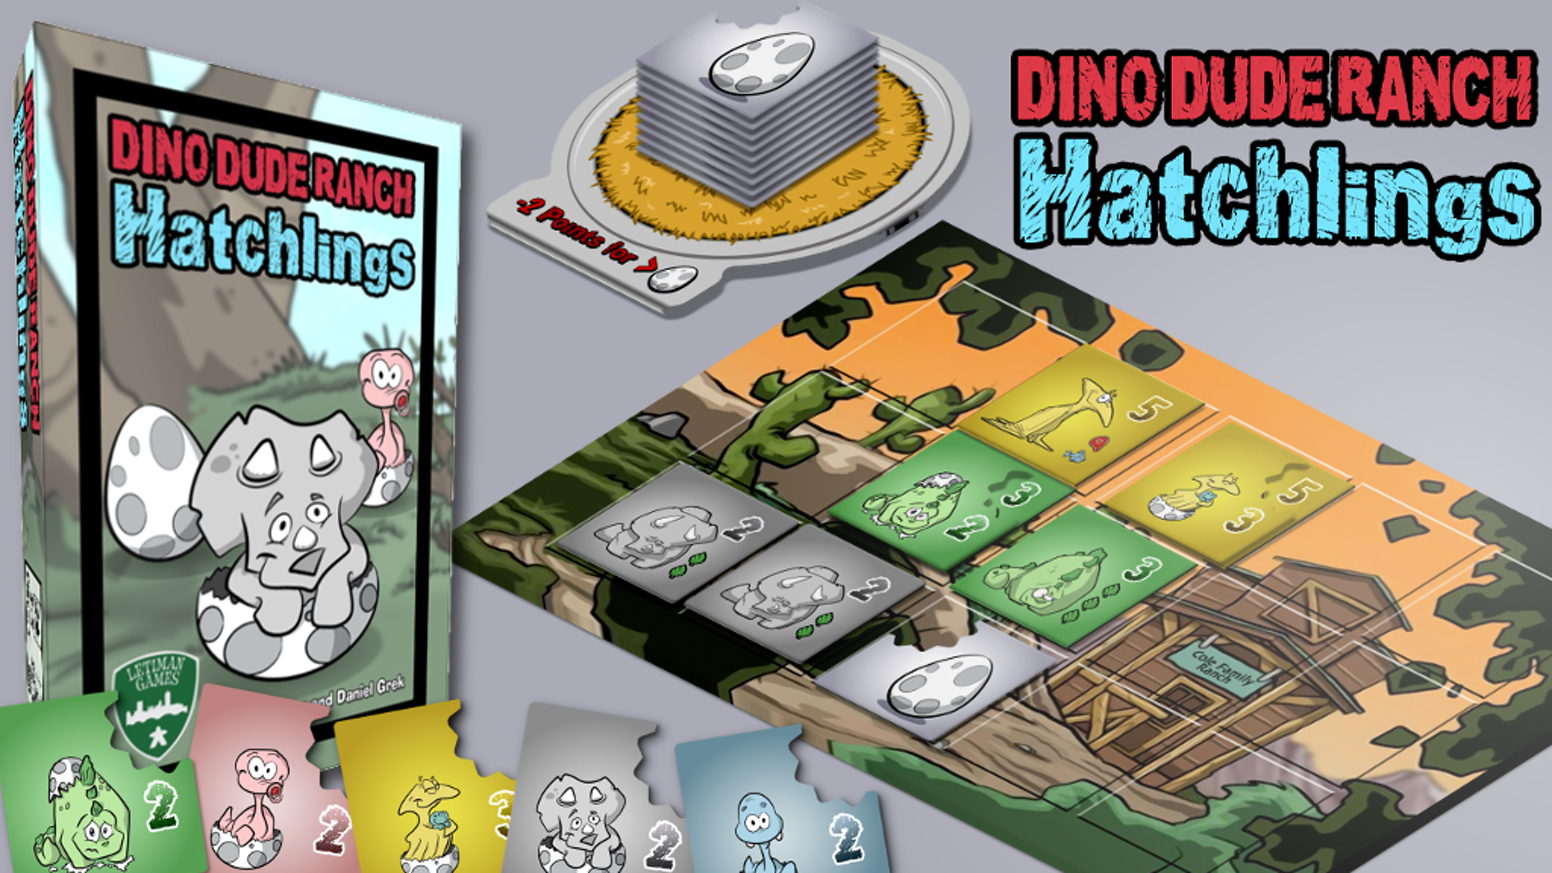 Dino Dude Ranch: Hatchlings expands our dinosaur-themed family game Dino Dude Ranch. More decisions, more fun, more cute dinos!